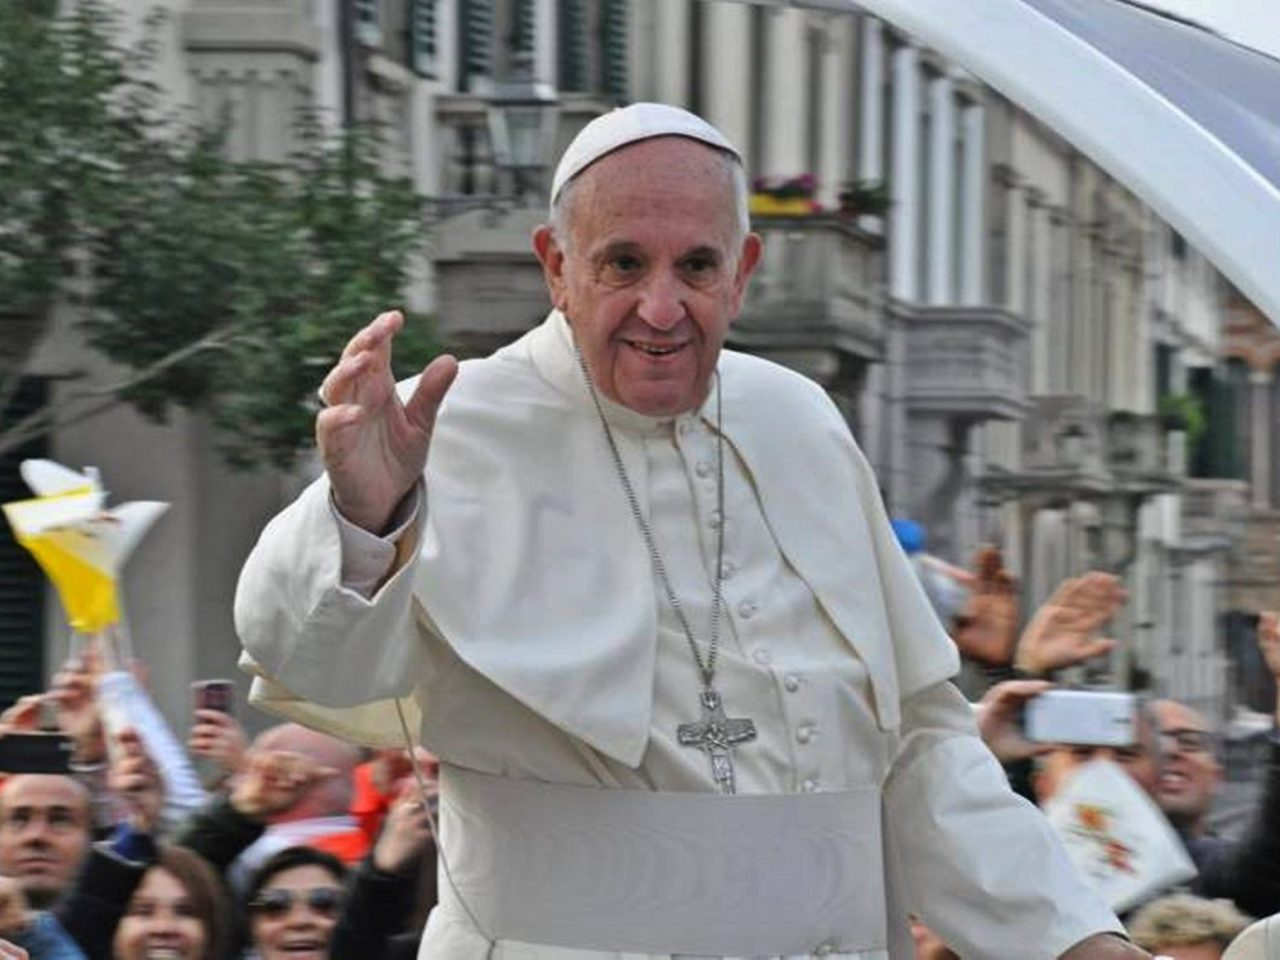 Here Is The Overview, Ethics And Commumity Of The Catholic Church